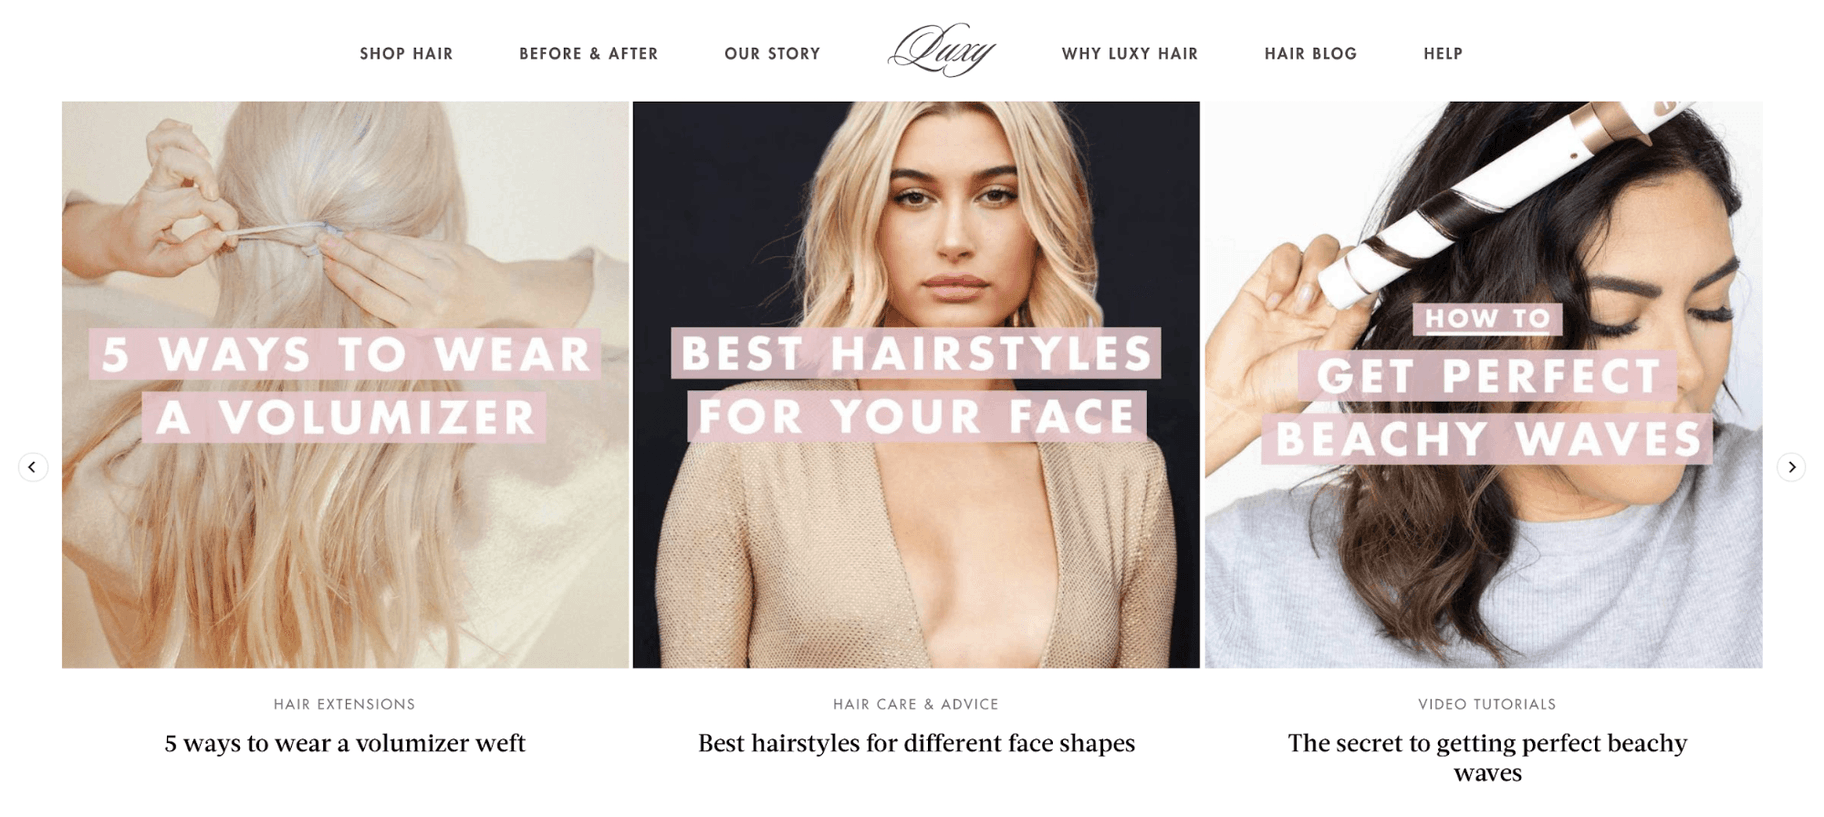 Luxy Hair Content Marketing